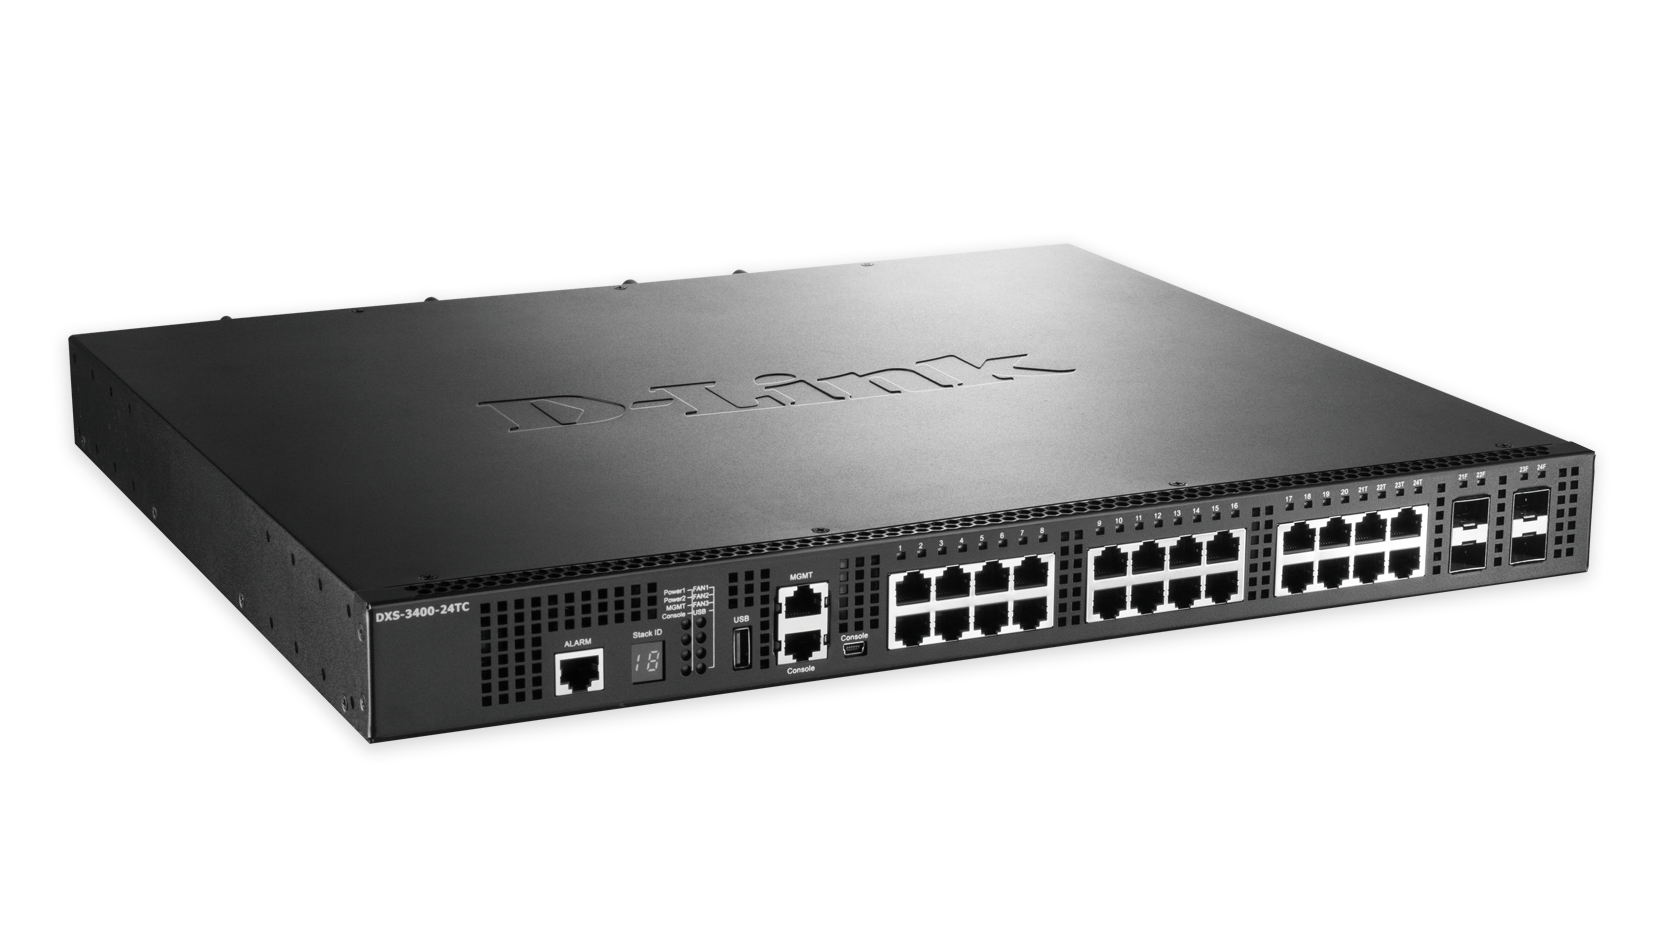 D-LINK DXS-3400-24TC MANAGED NETWORK SWITCH L3 GIGABIT ETHERNET BLACK